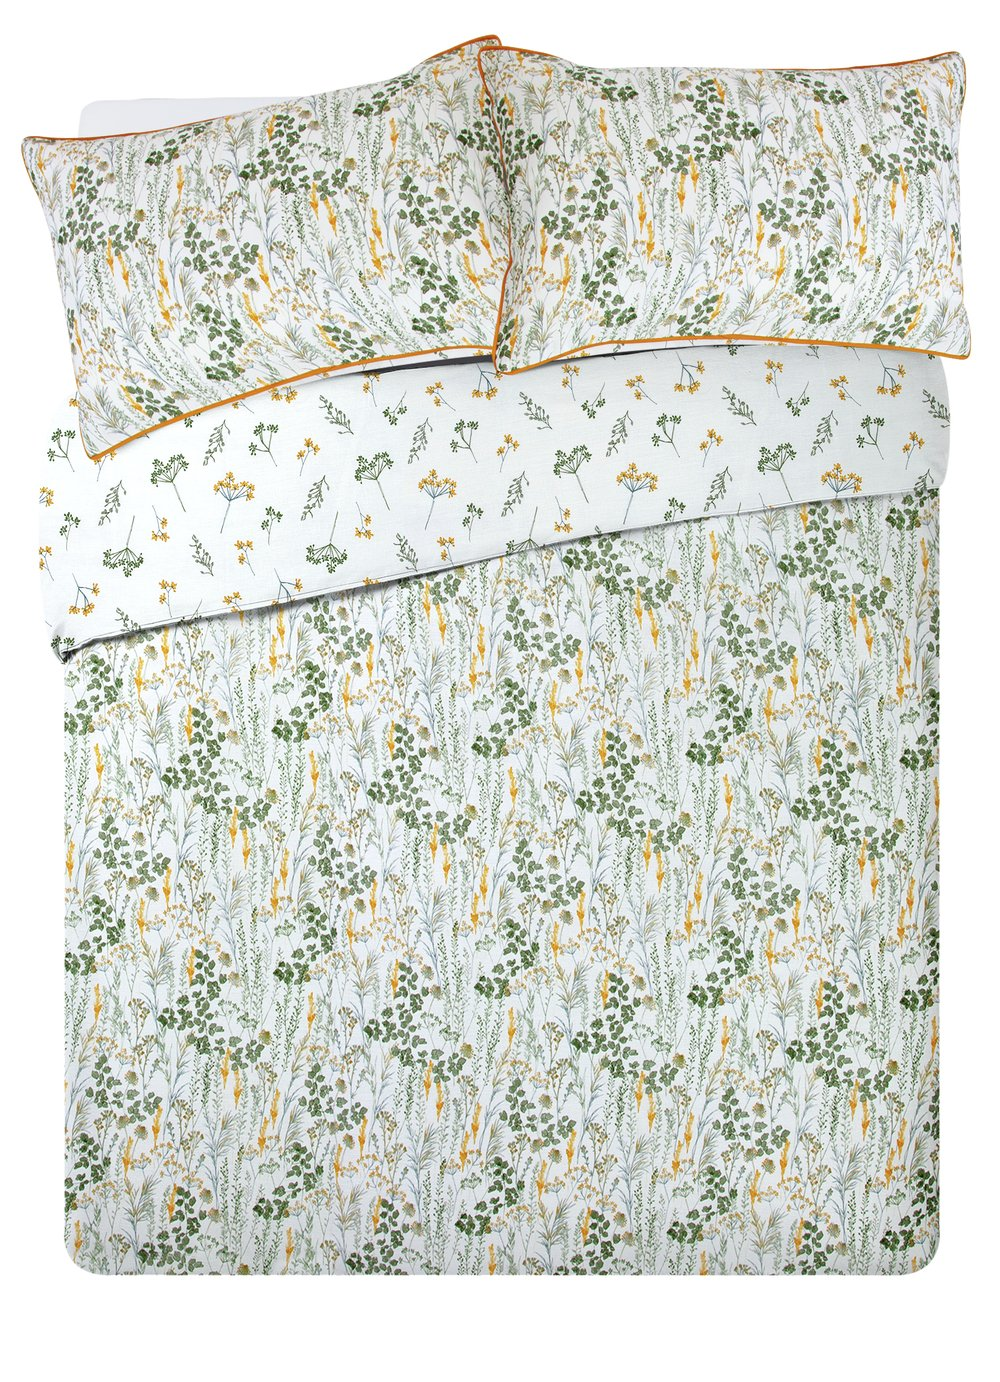 Argos Home Wildflowers Sateen Bedding Set - Double